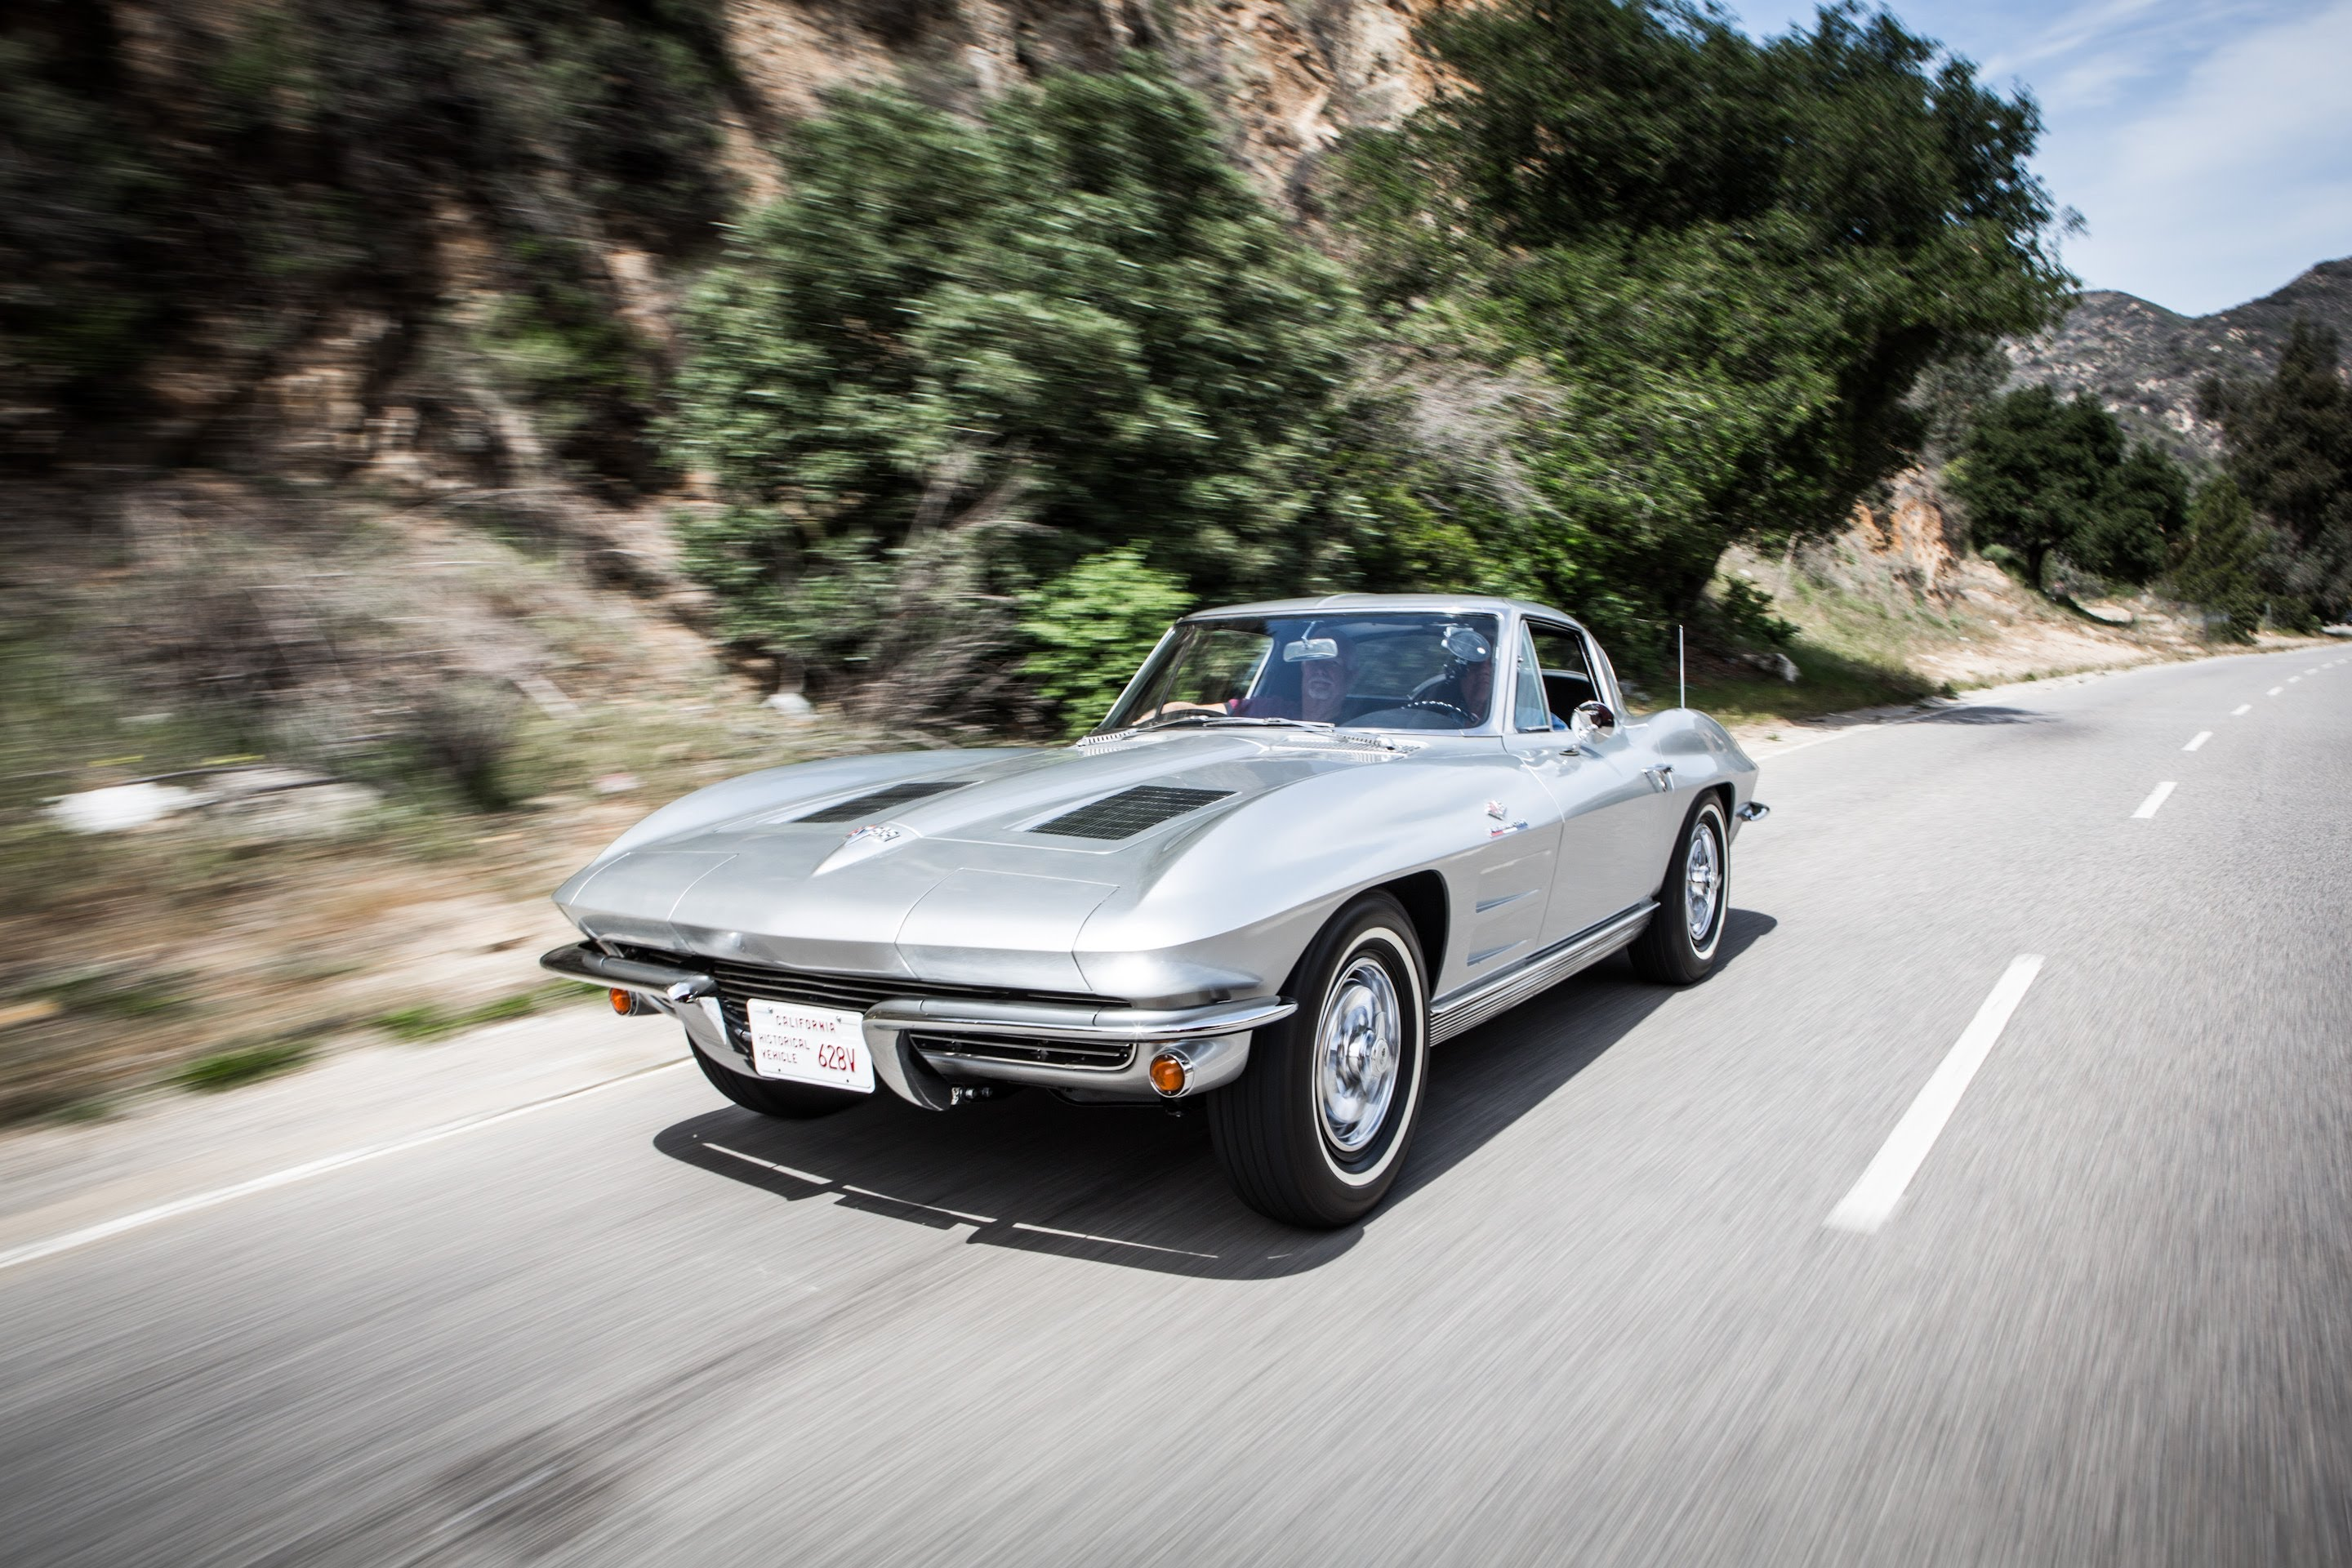 1963 Corvette Stingray Jay Leno likewise 1963 Corvette Sting Ray I Watched This Beauty Roll Into A besides 1963 Chevrolet Corvette Stingray likewise 1963 Chevrolet Corvette Sting Ray Right Side View further 1963 Chevrolet Corvette Stingray. on 1963 corvette stingray